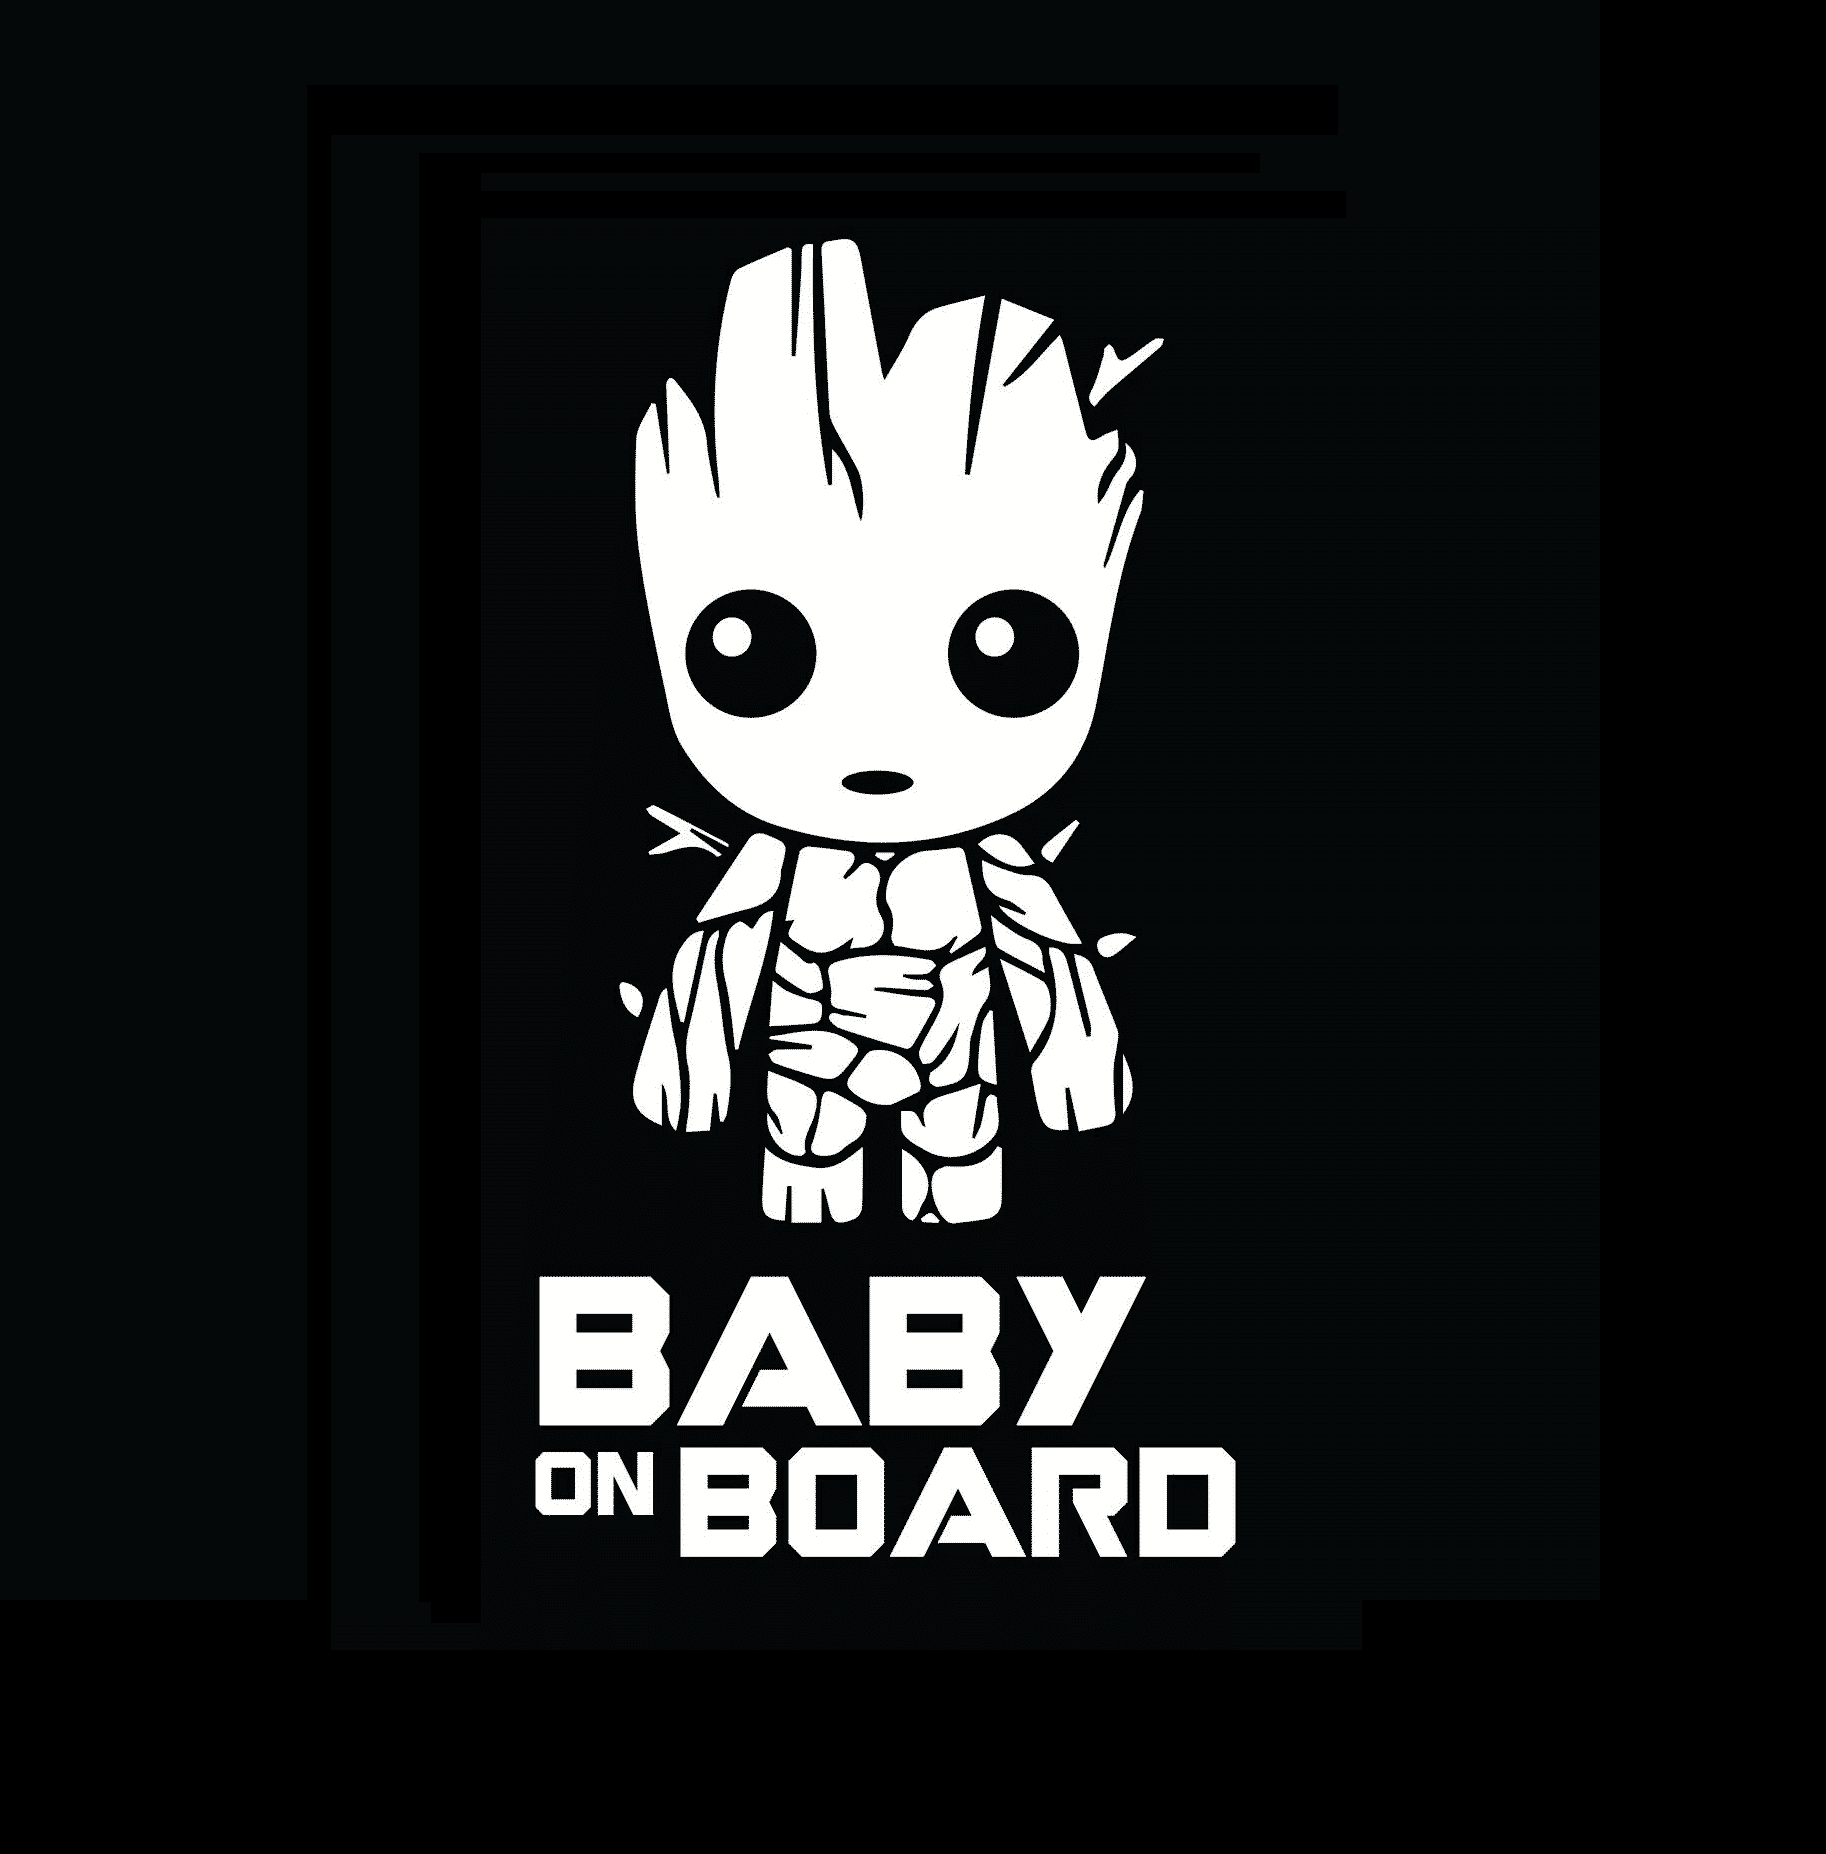 Groot Baby on Board Sticker Decal | Baby on Board Store